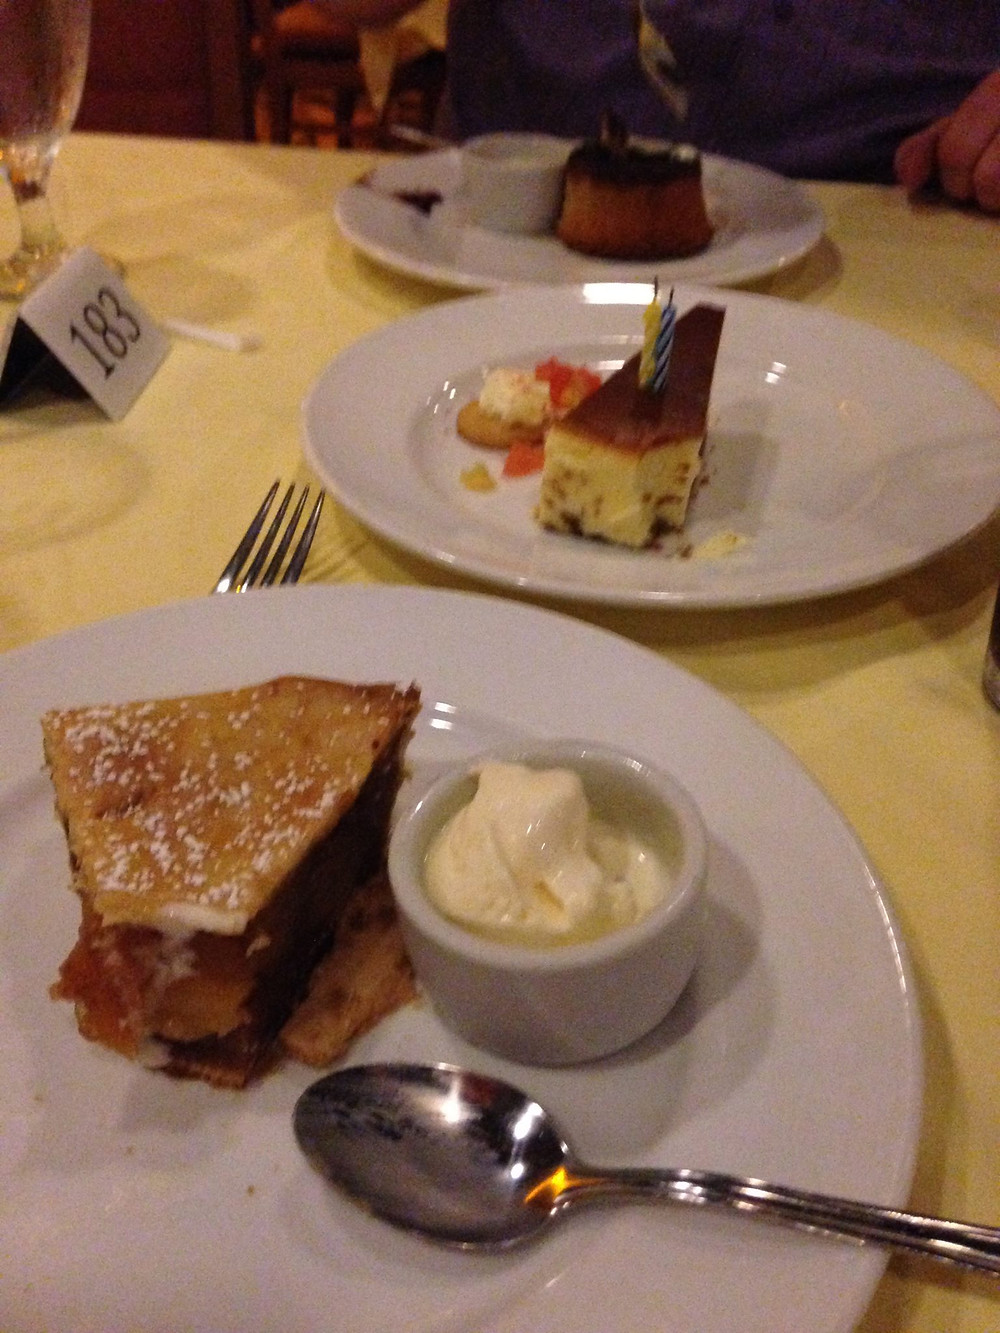 Cheesecake, mousee and apple pie desserts on board